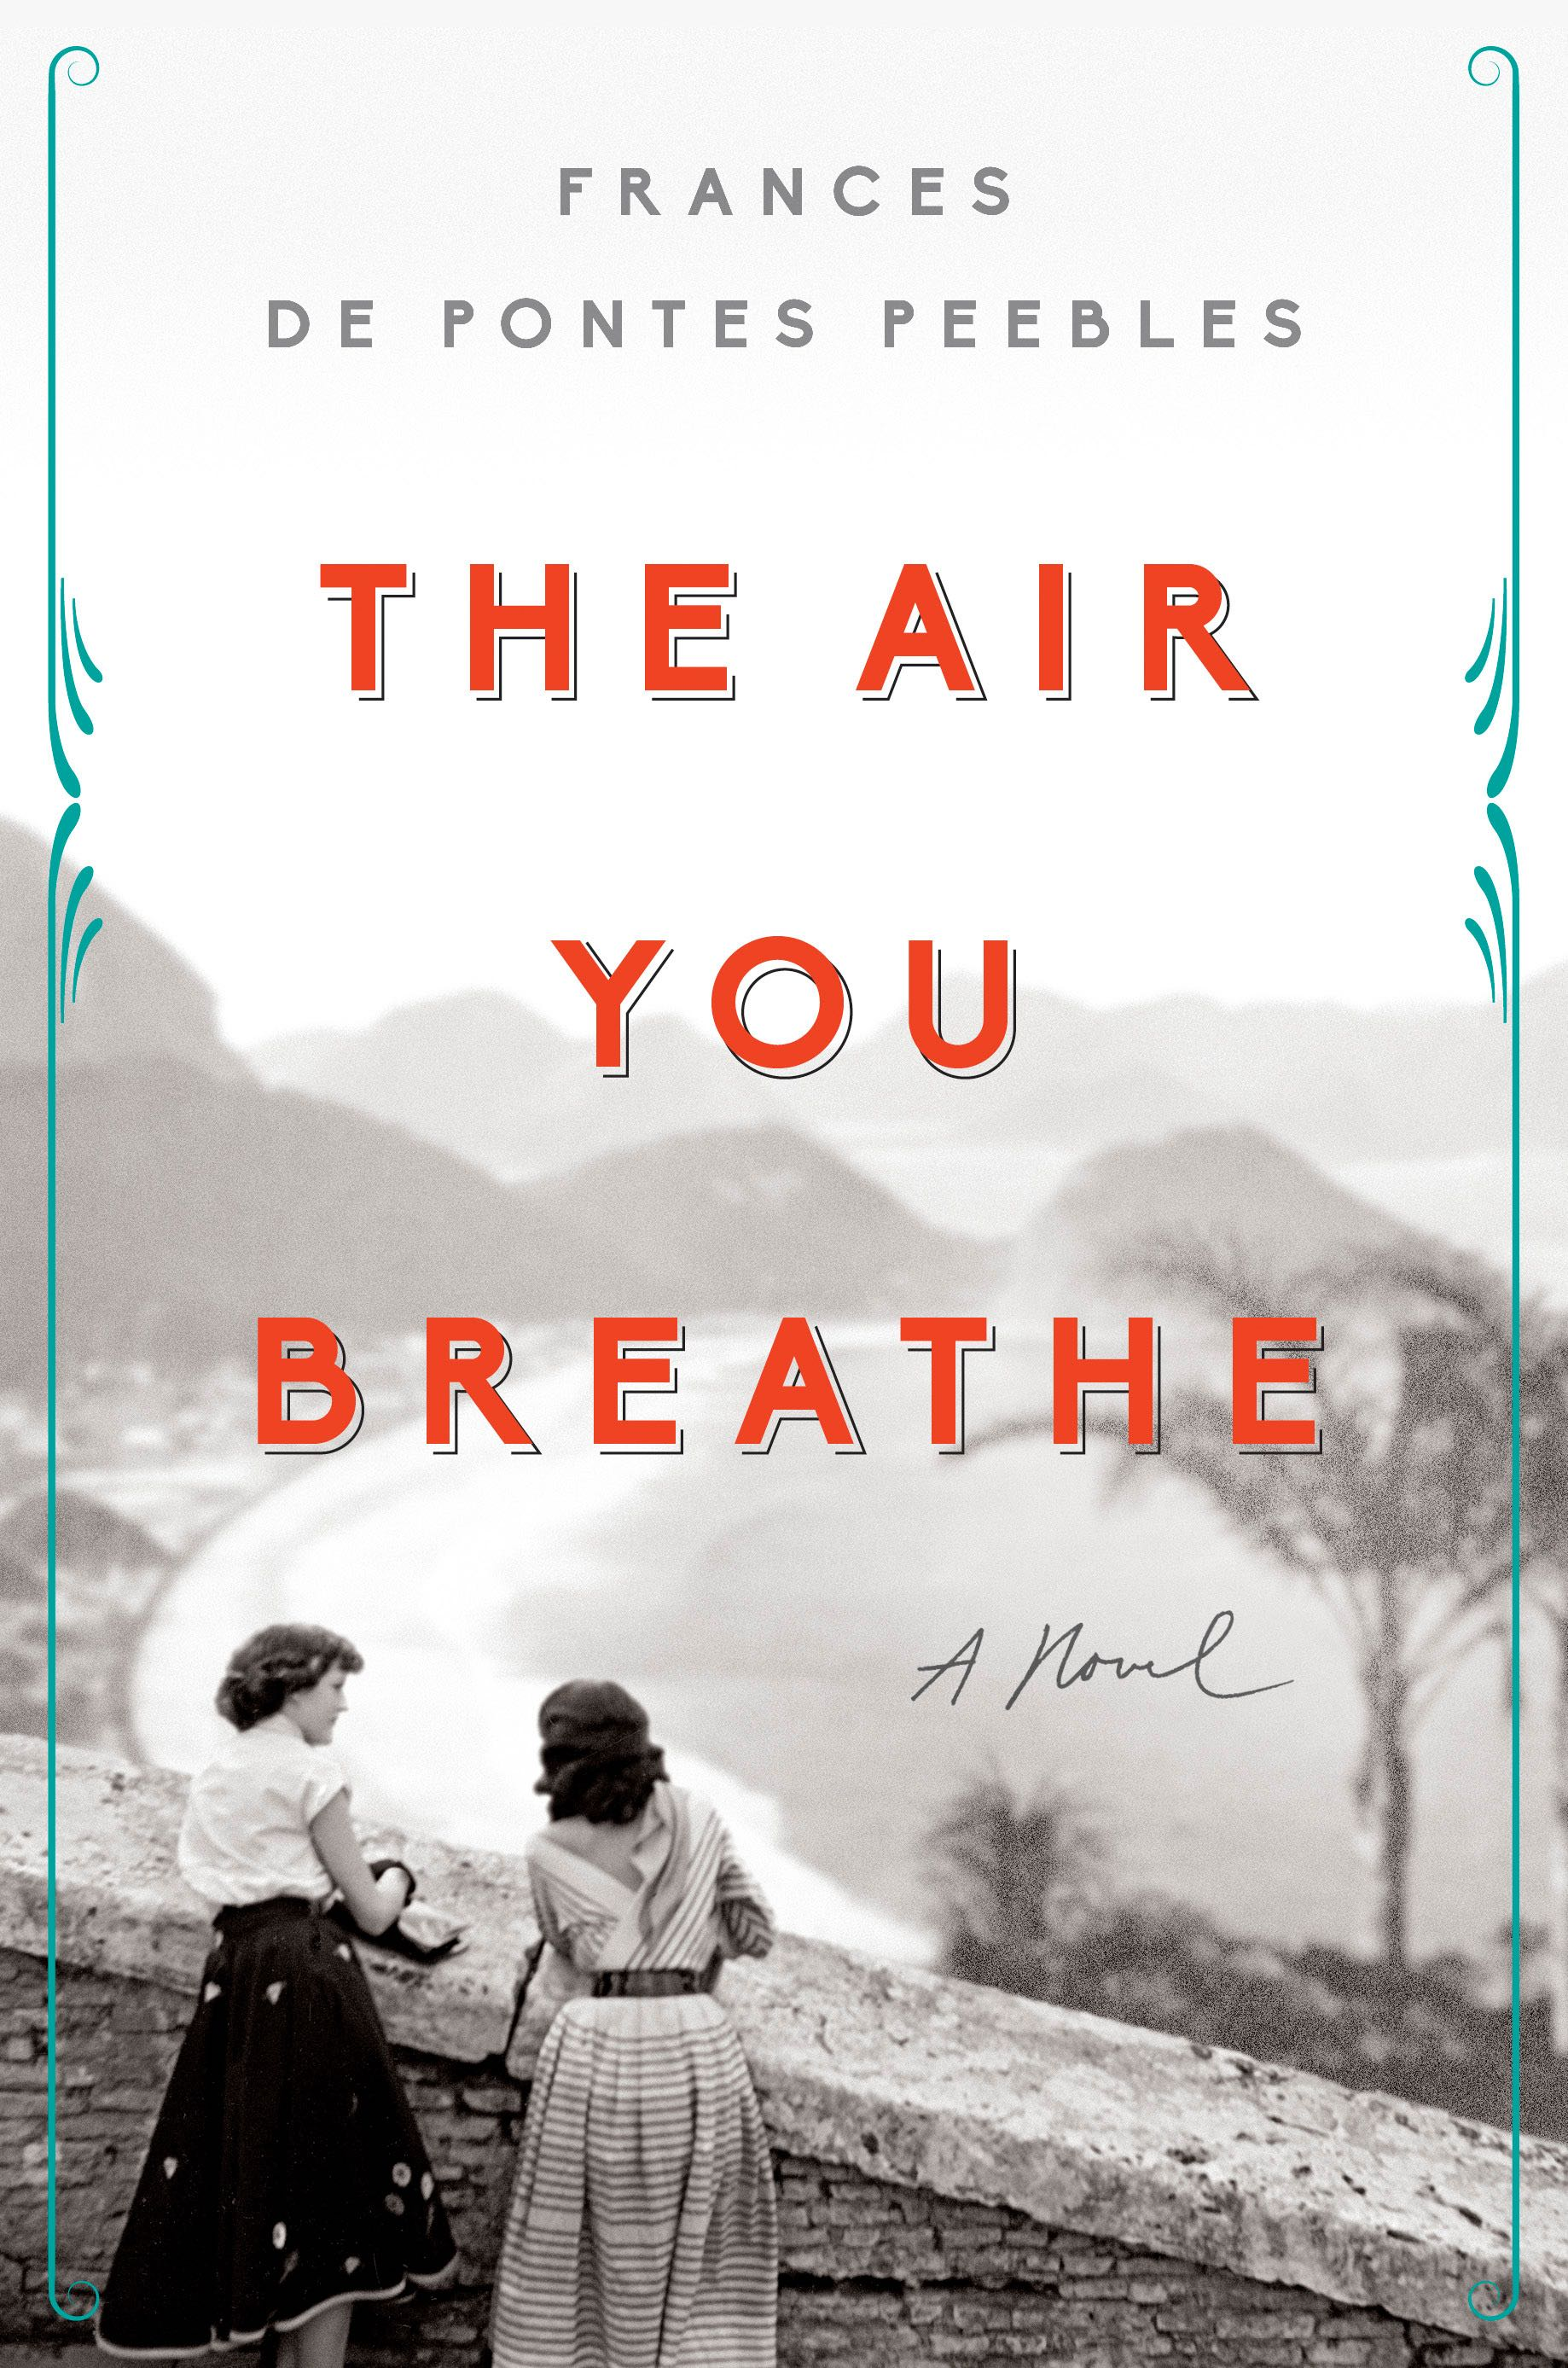 THE AIR YOU BREATHE cover small.jpg